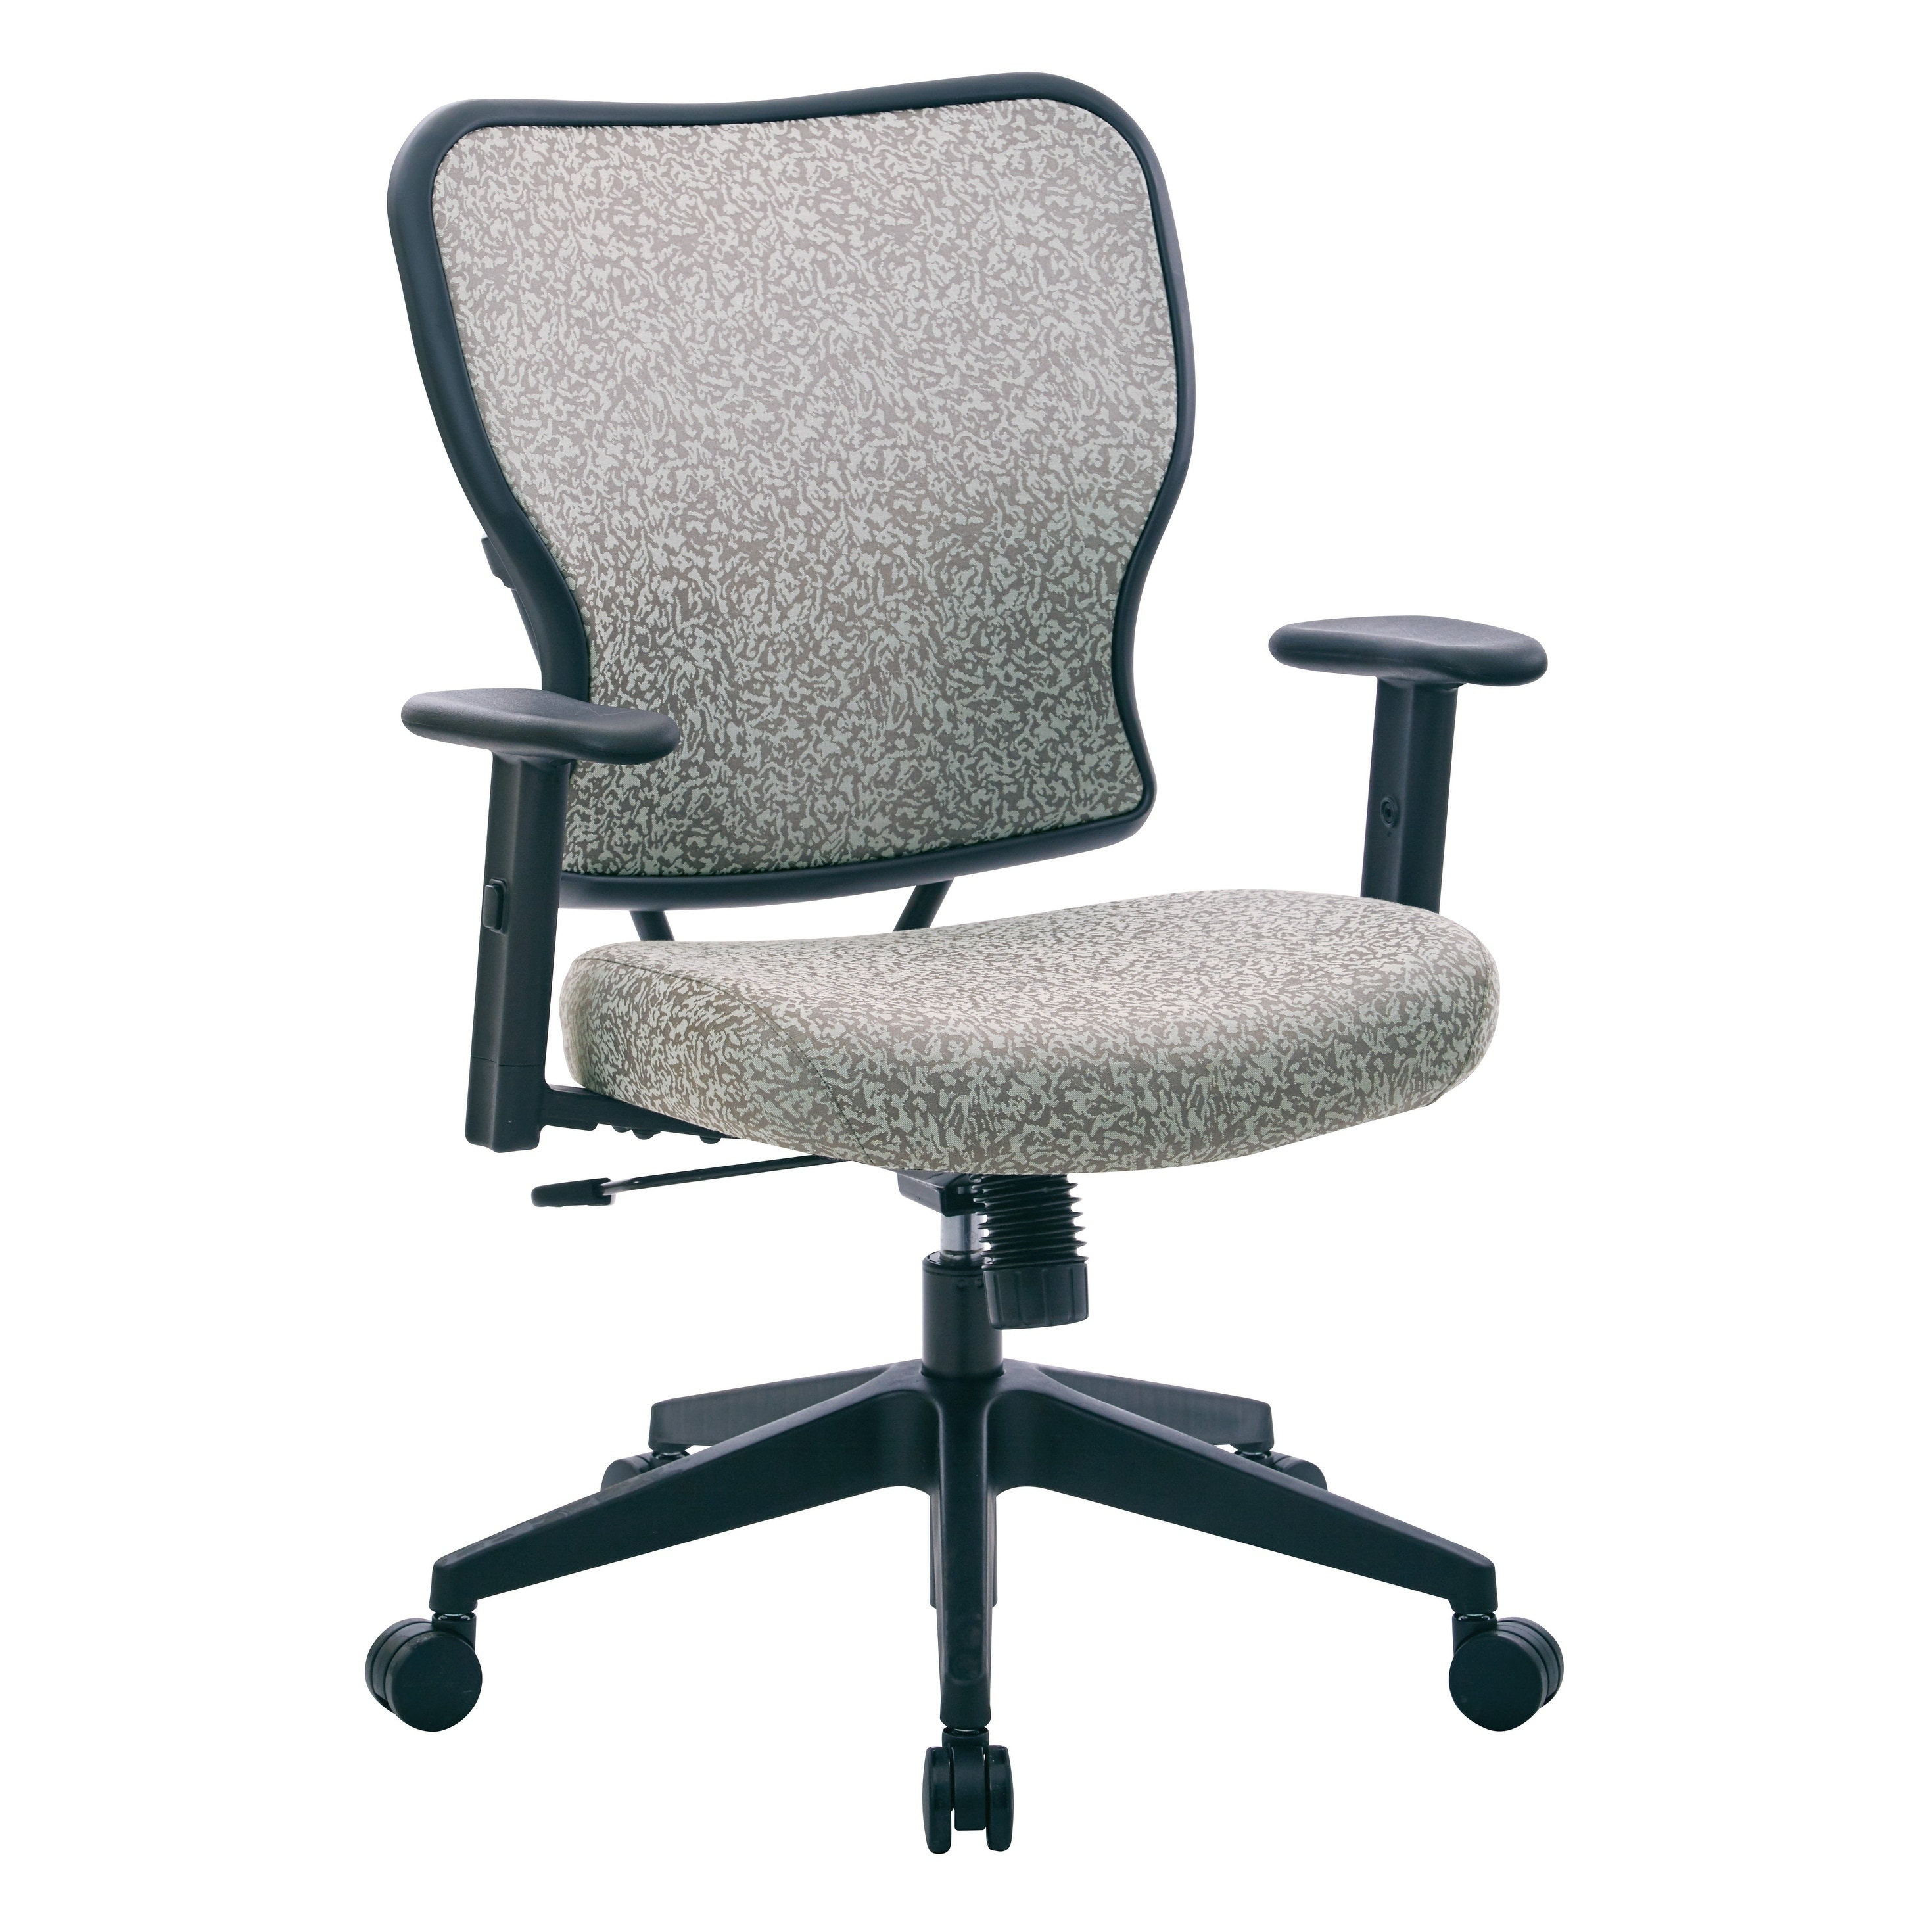 Height Adjustable Chair Space Seating Deluxe Fabric 2 To 1 Mechanical Height Adjustable Arms Chair